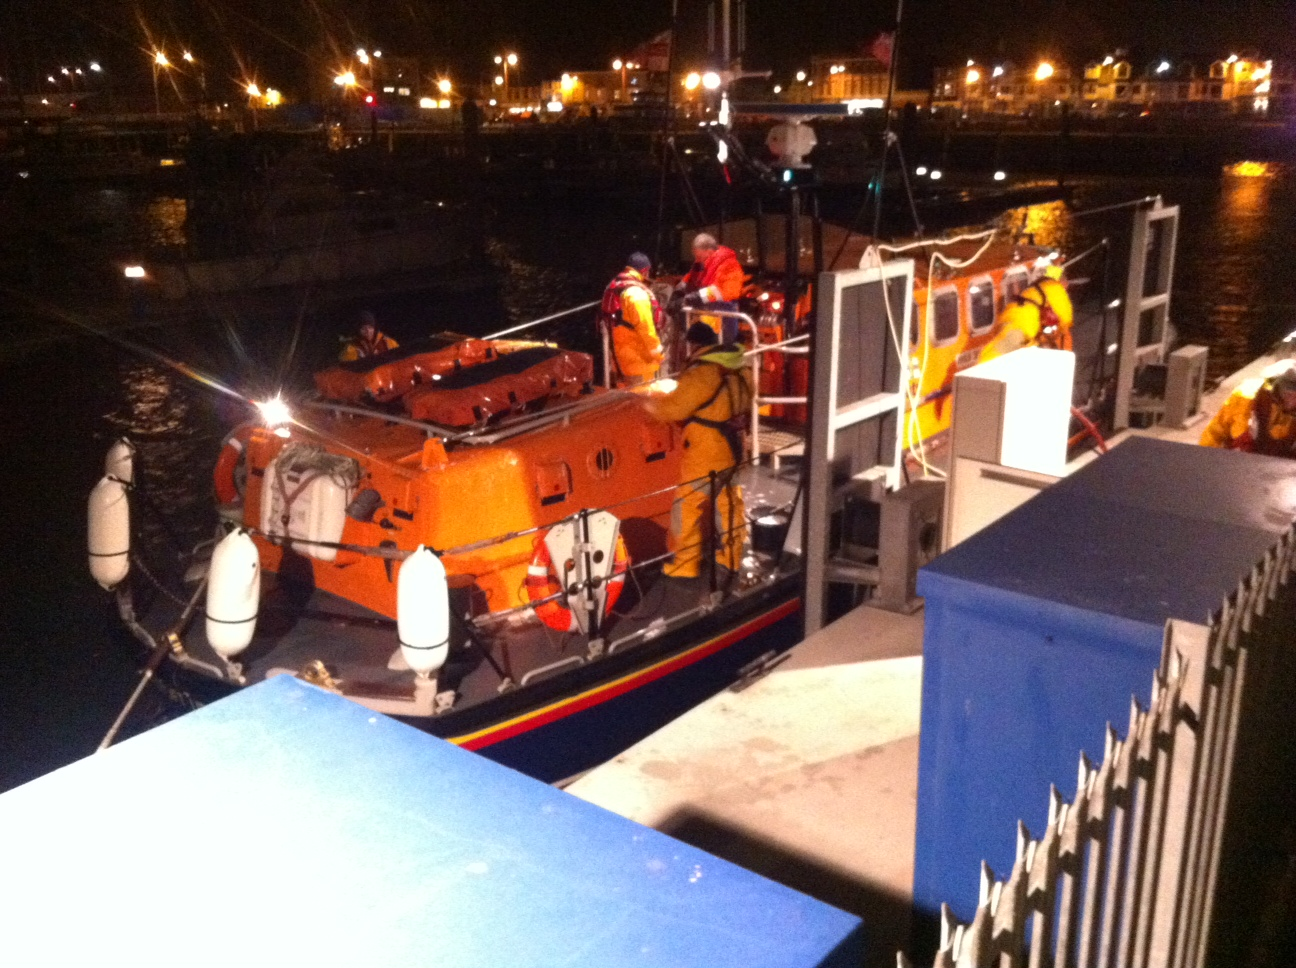 Lowestoft life boat